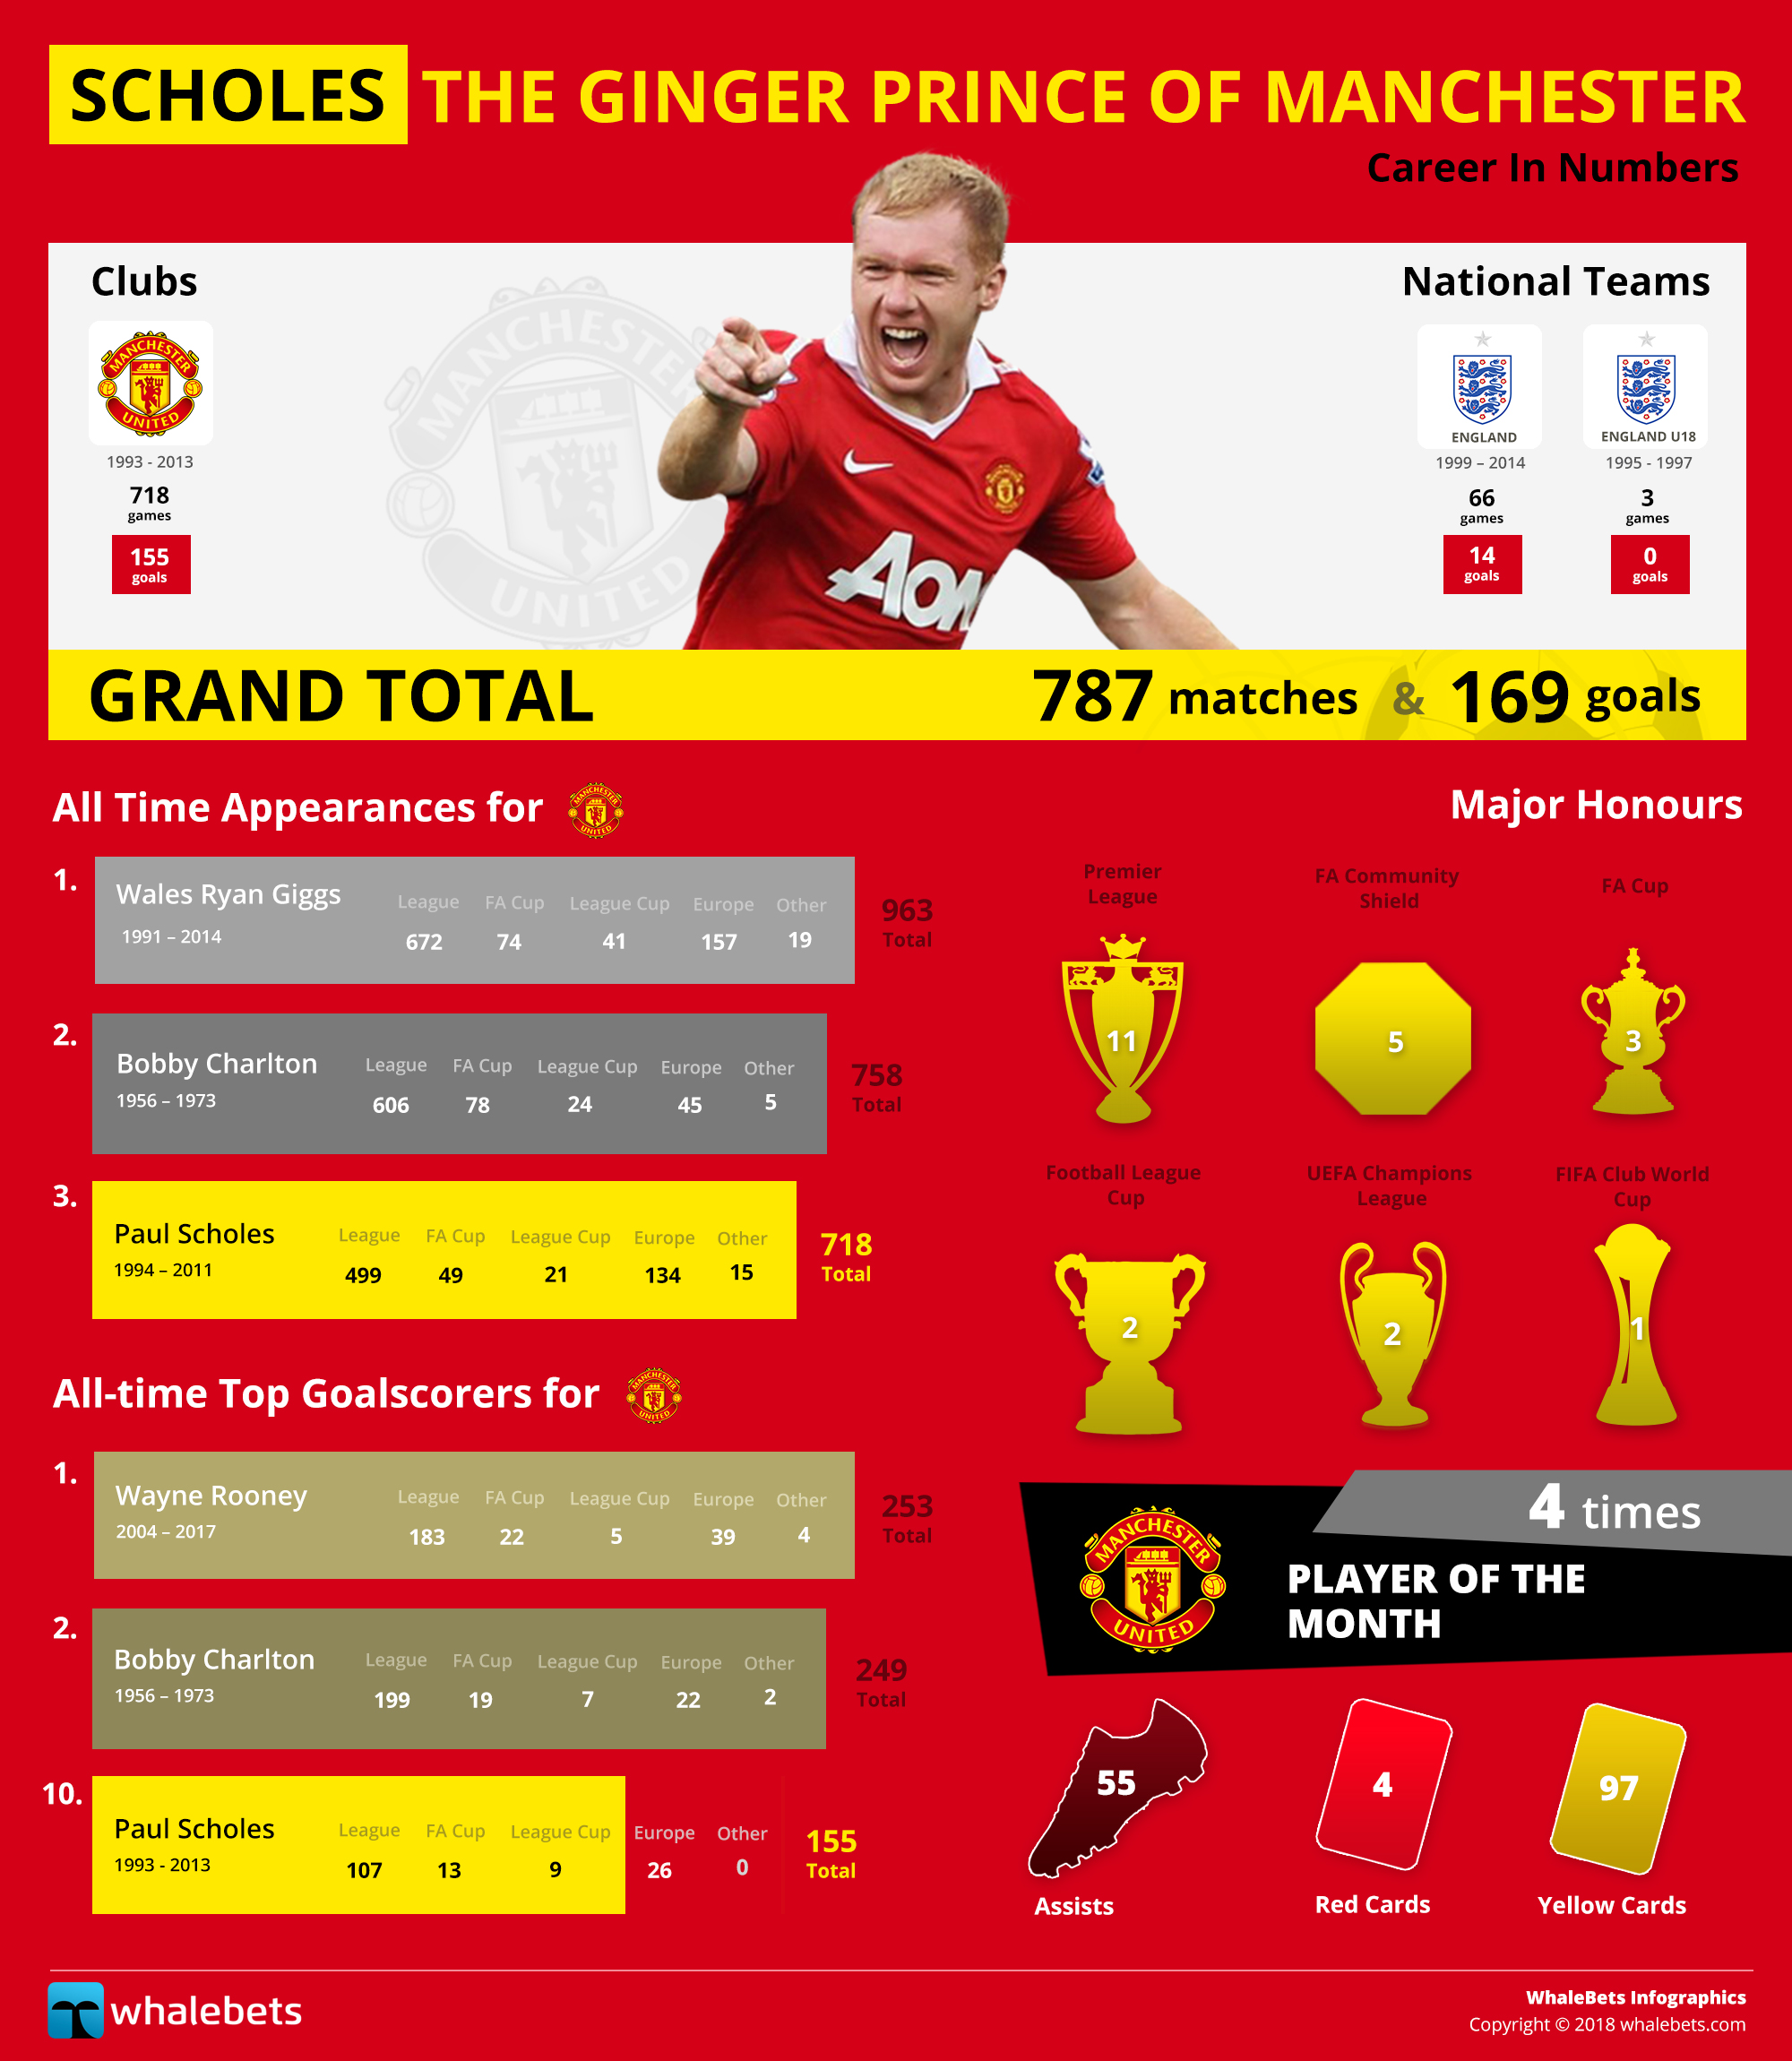 Scholes - The Ginger Prince of Manchester